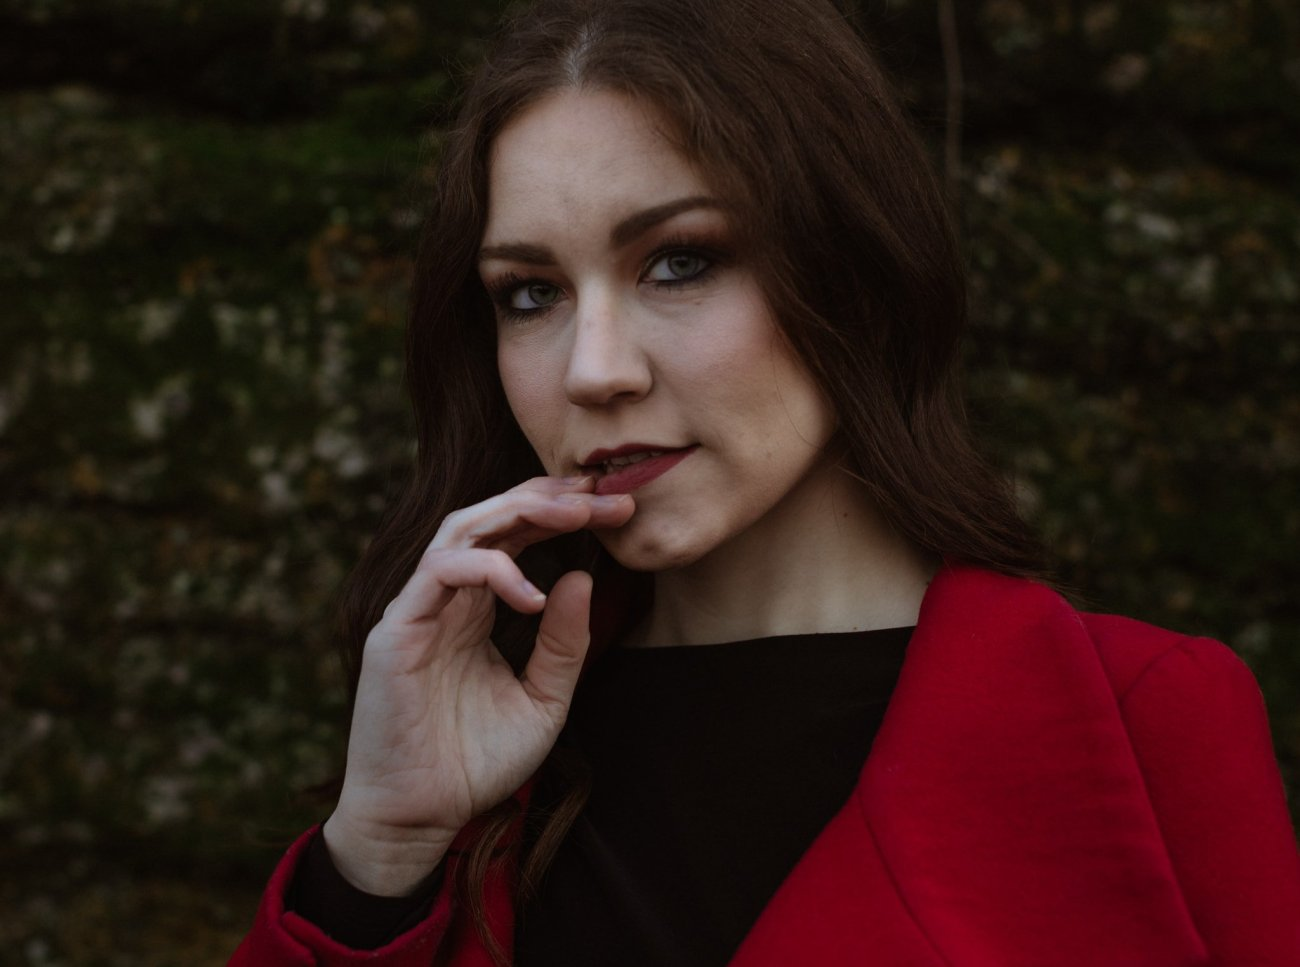 Woman with red coat and lipstick touches lips